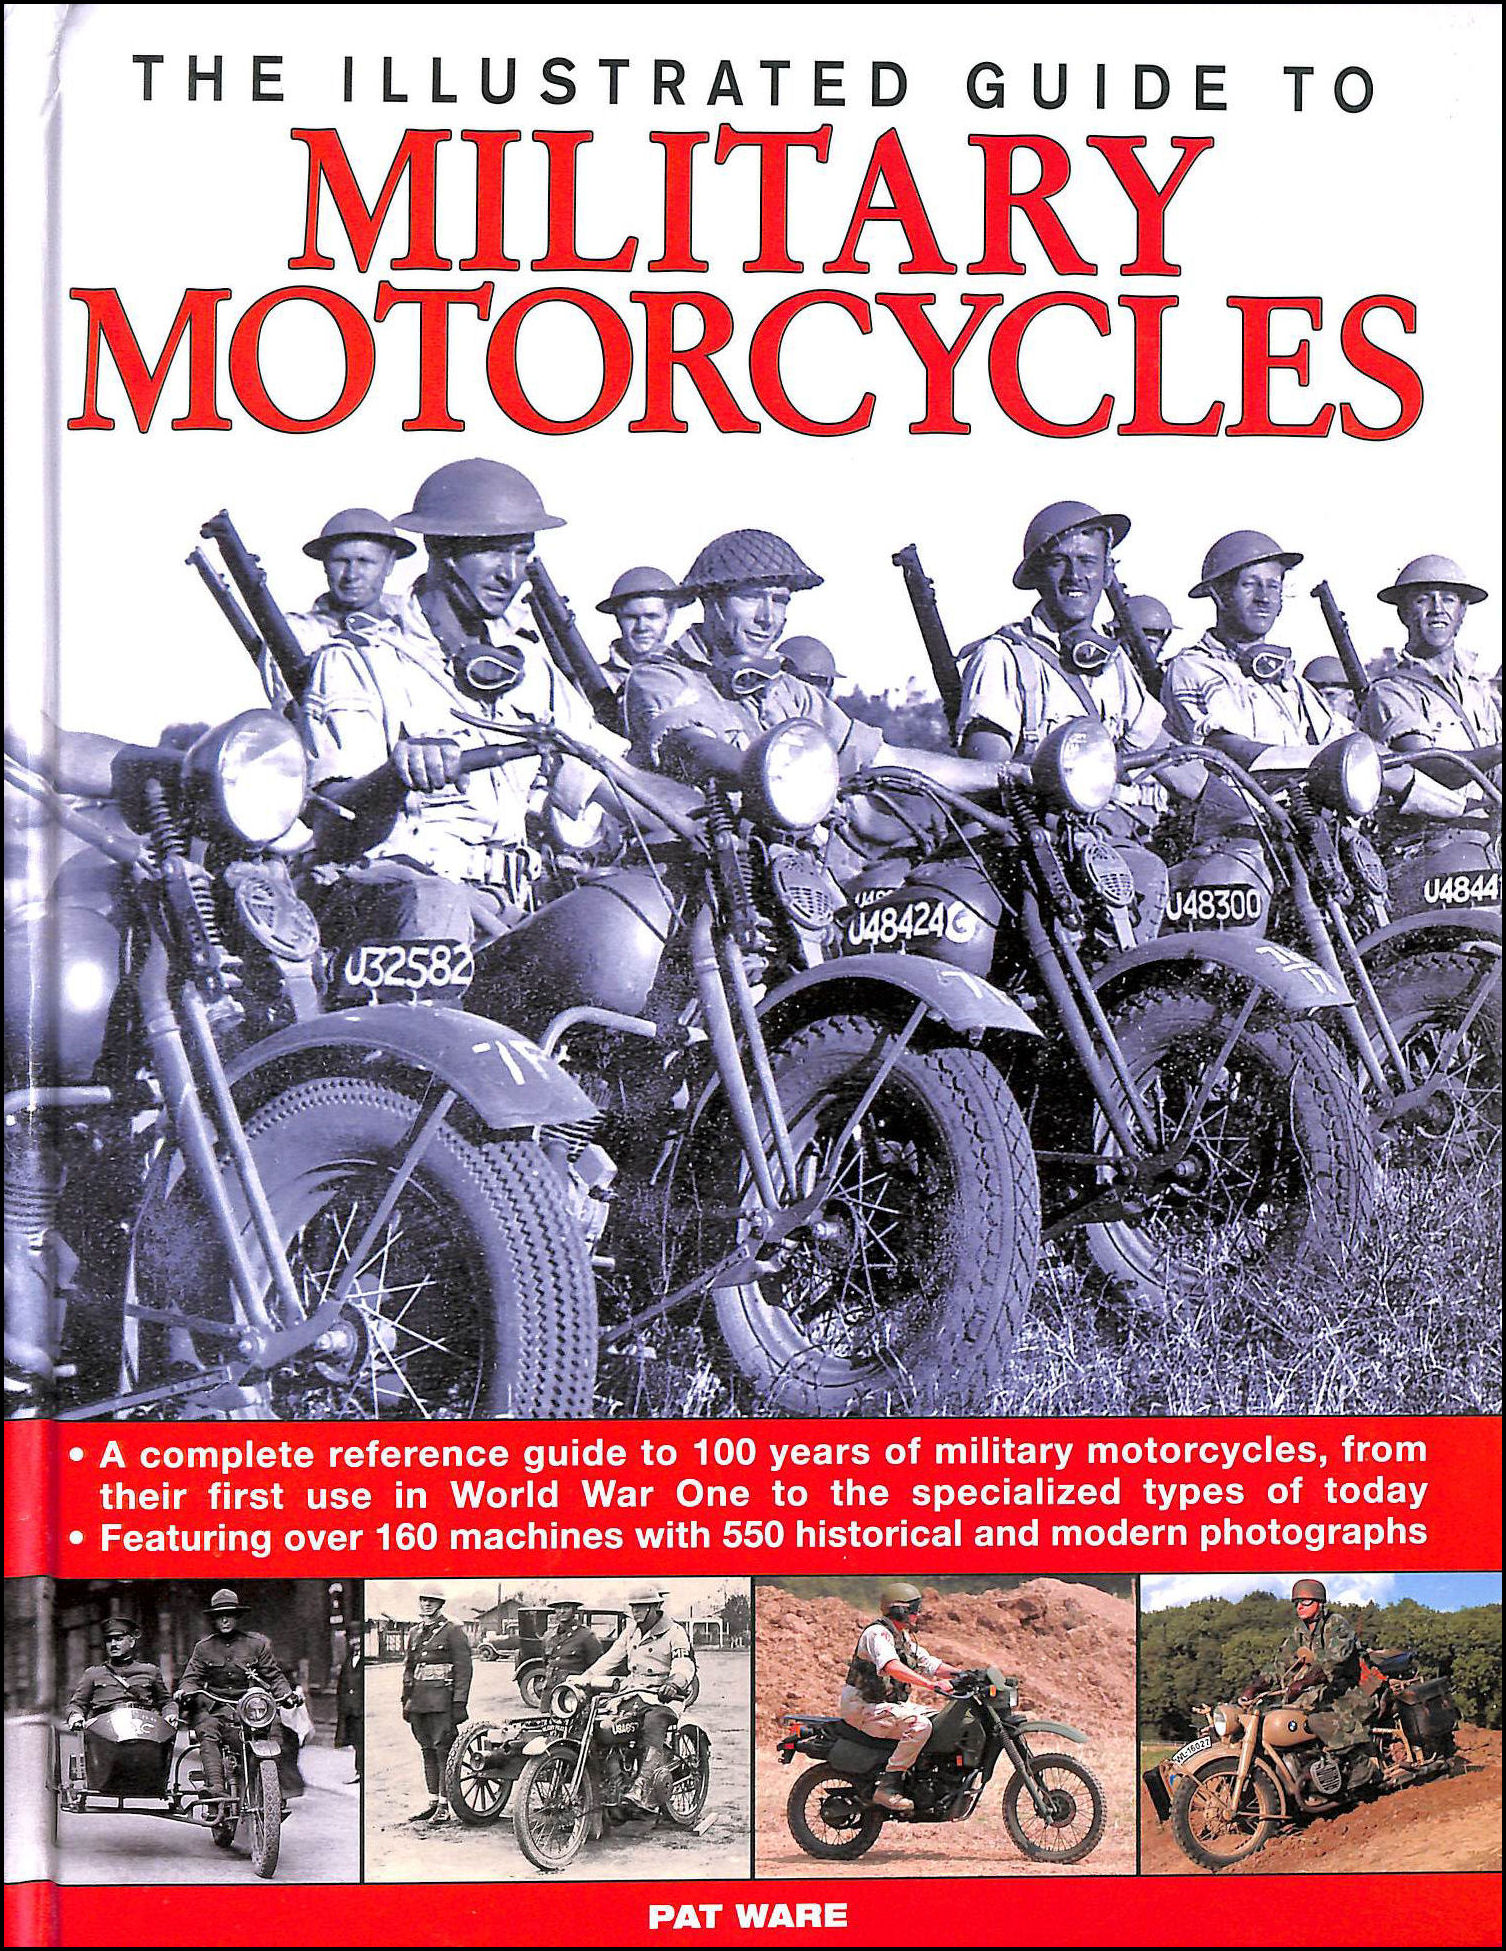 The Illustrated Guide to Military Motorcycles